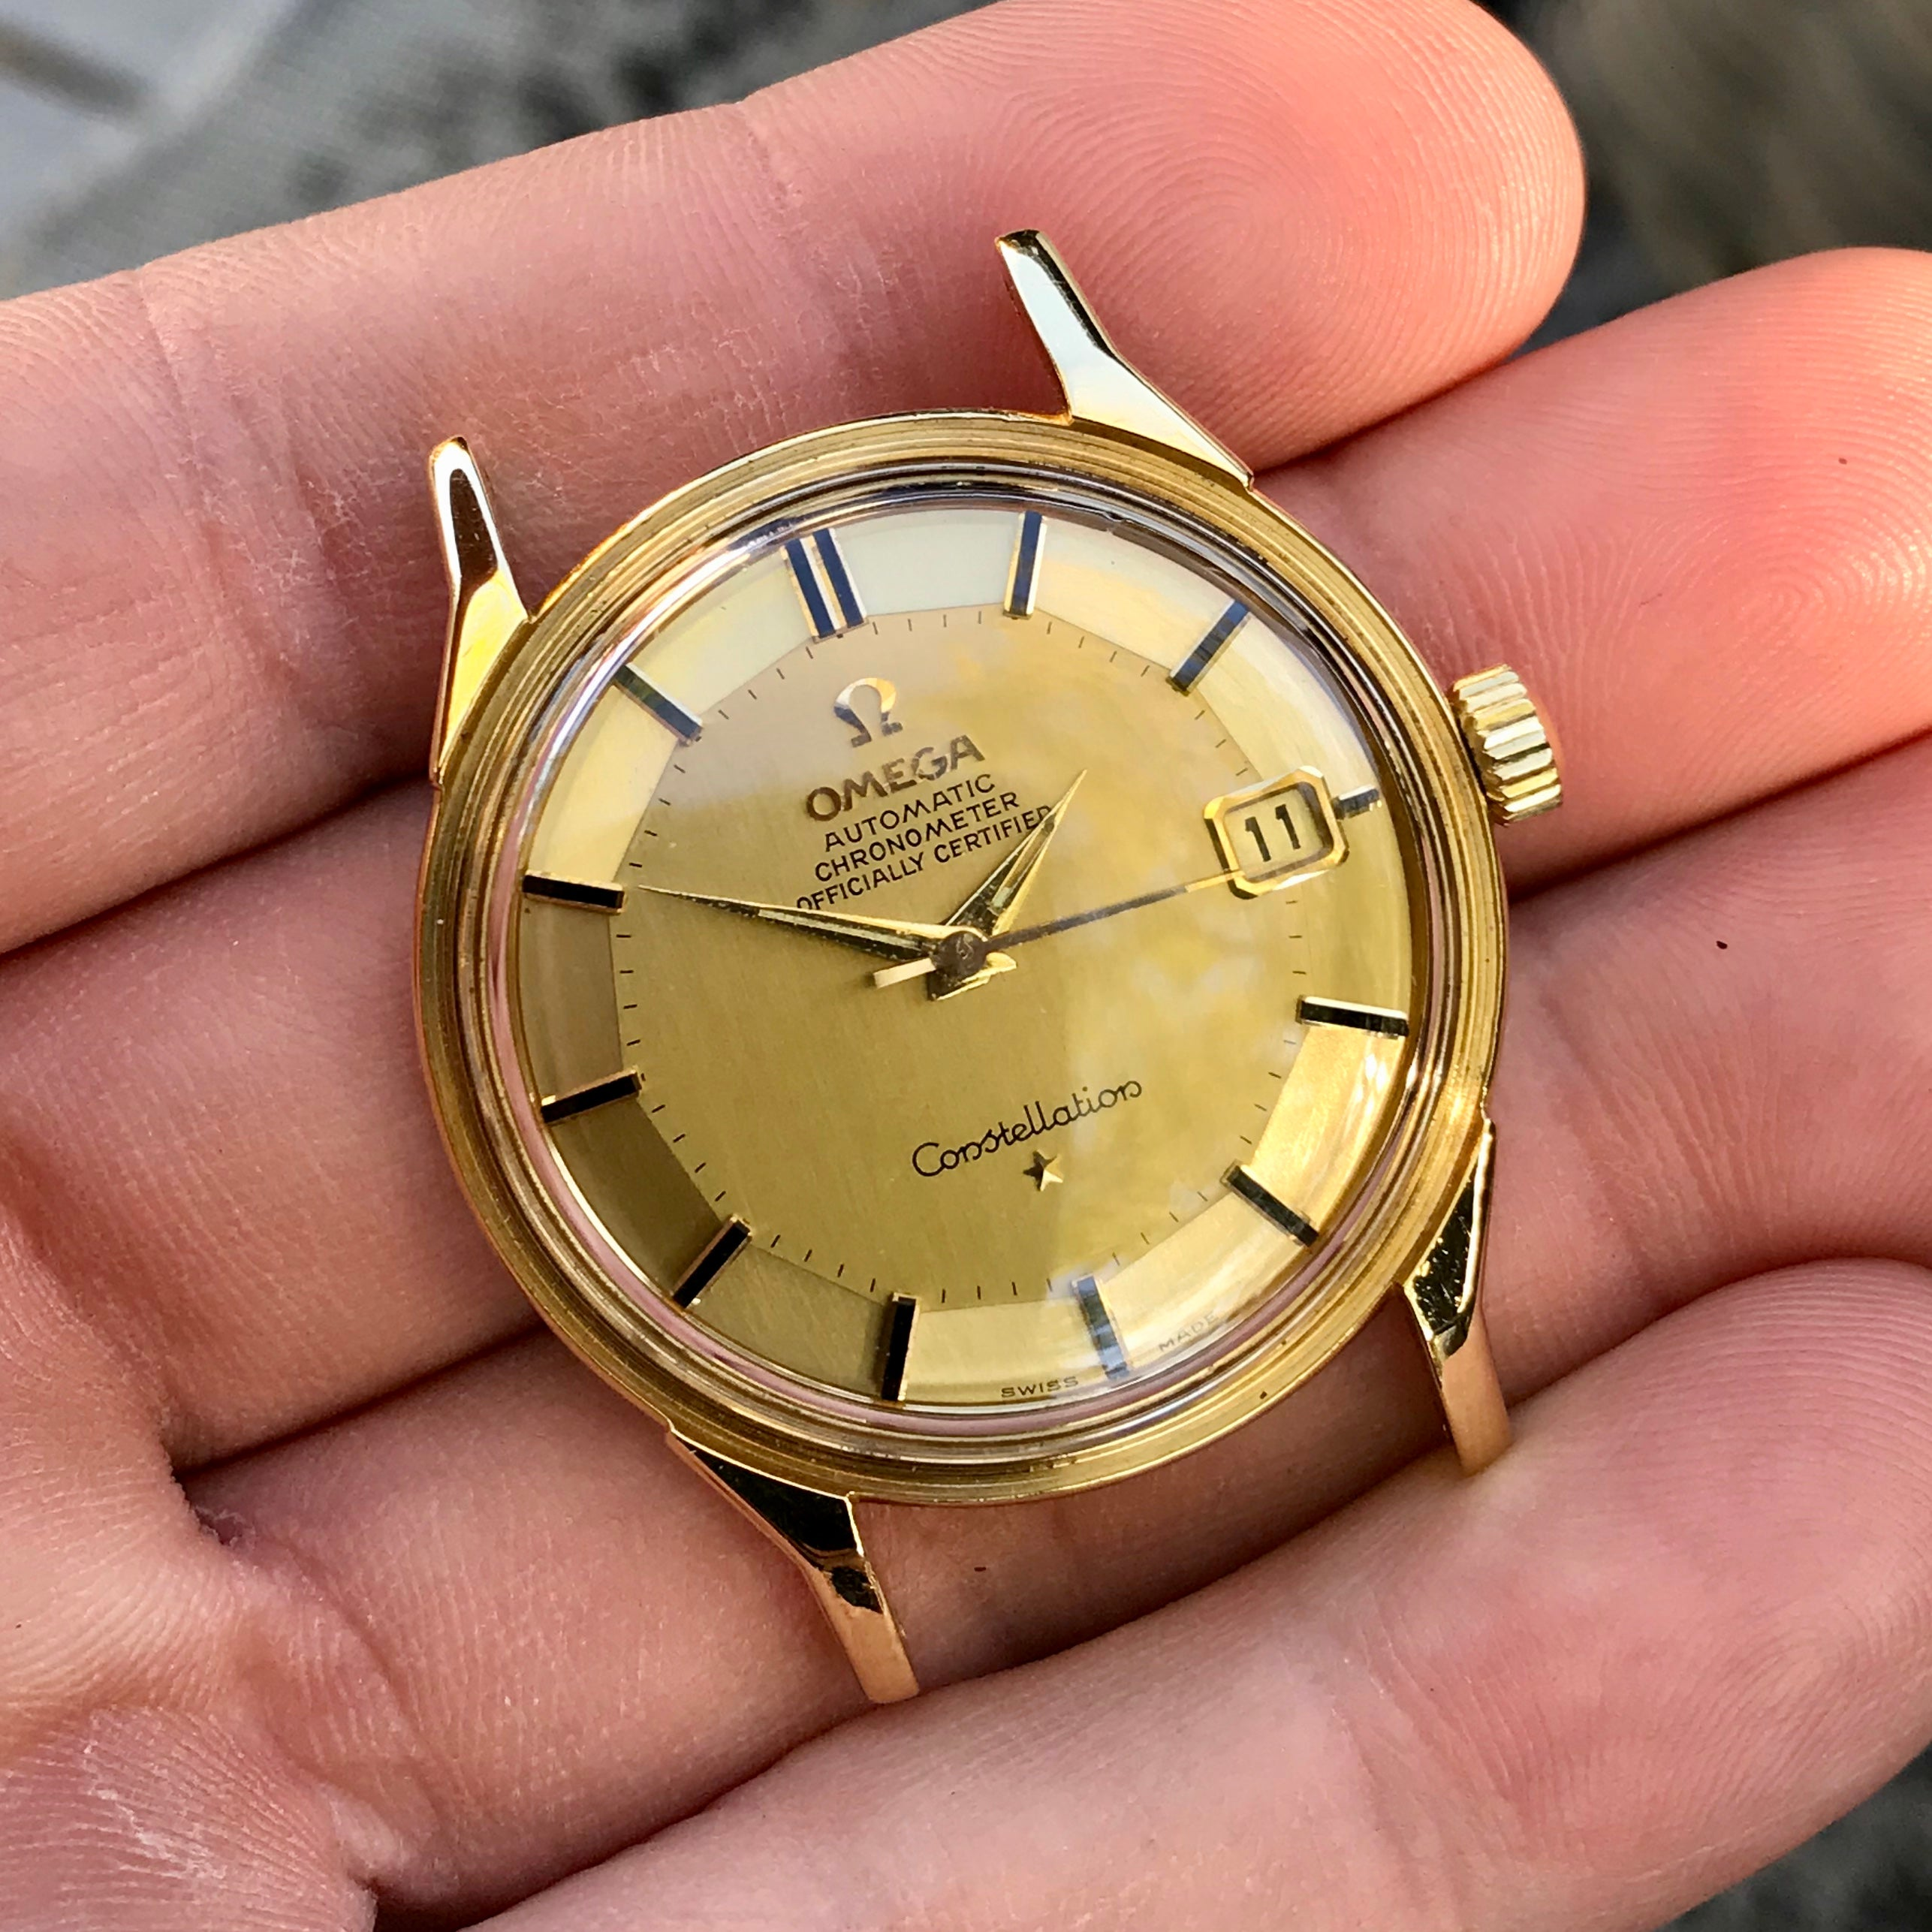 Vintage Omega Constellation Date 168.005 18K Yellow Gold Caliber 561 Automatic Wristwatch